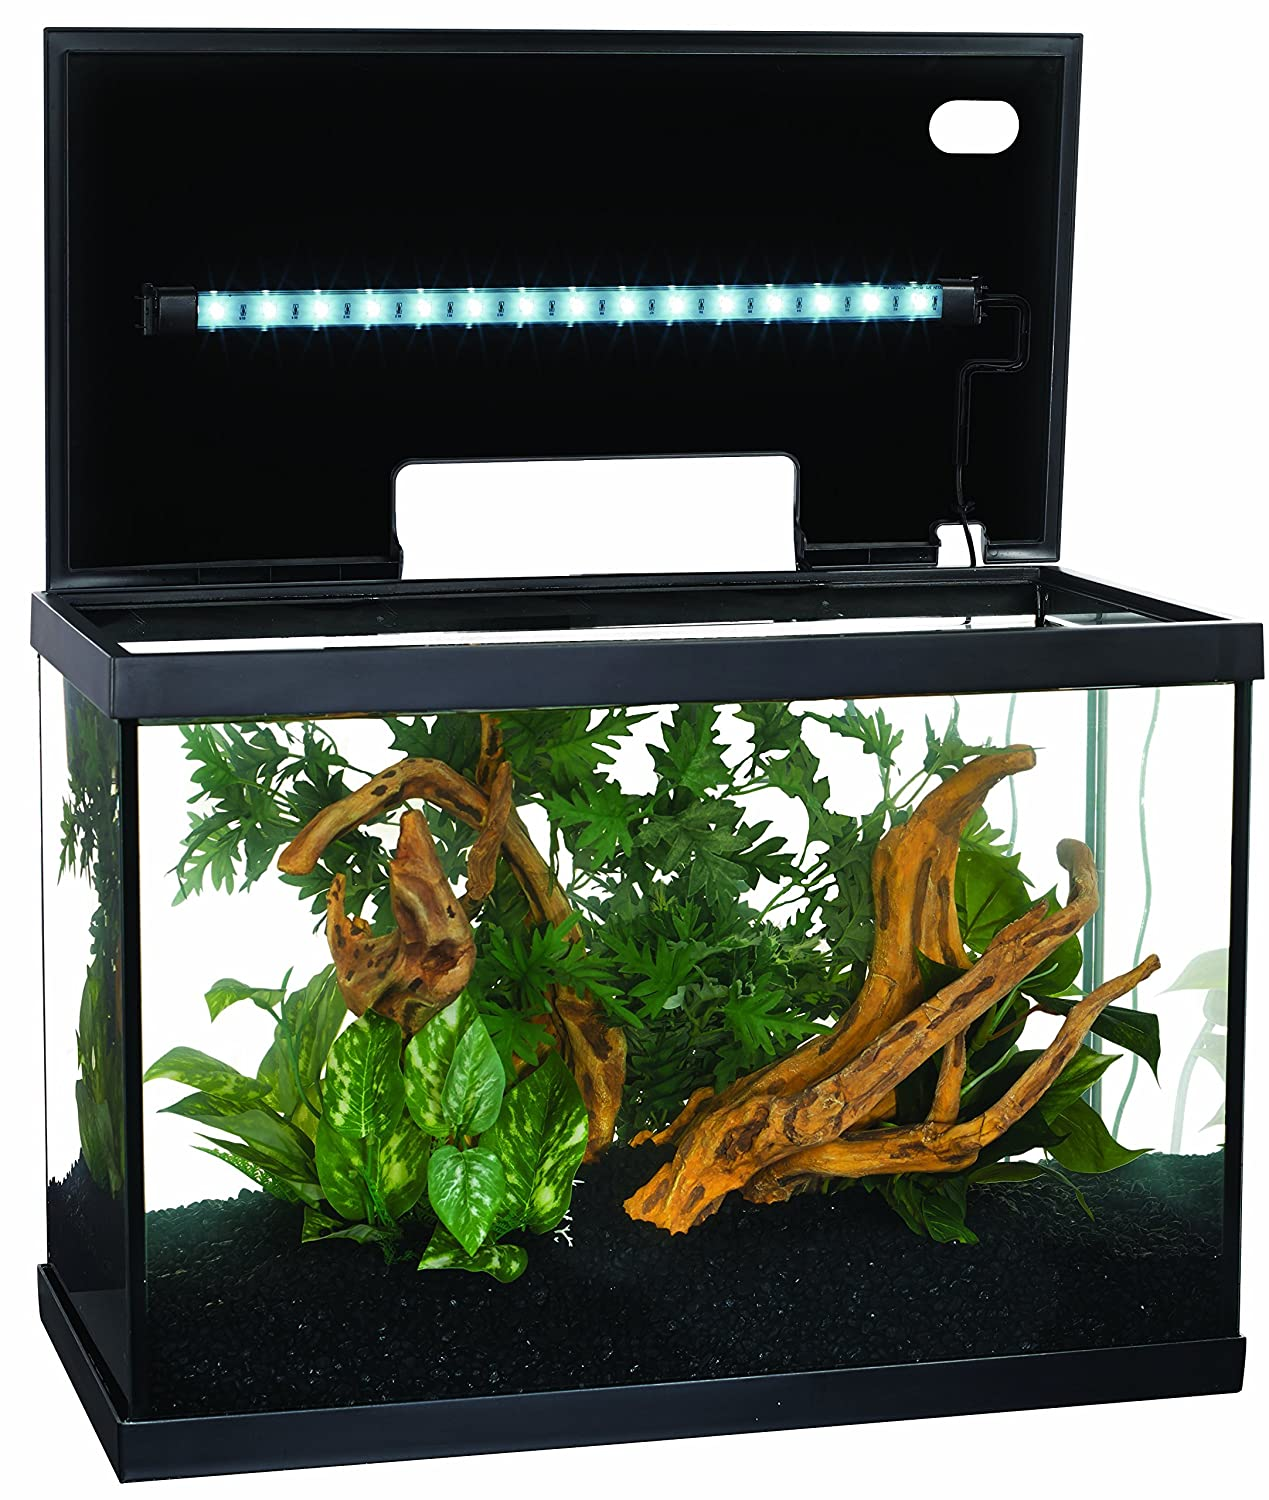 Marina led glass aquarium kit 10 gallon fish tank brand for 5 gallon glass fish tank